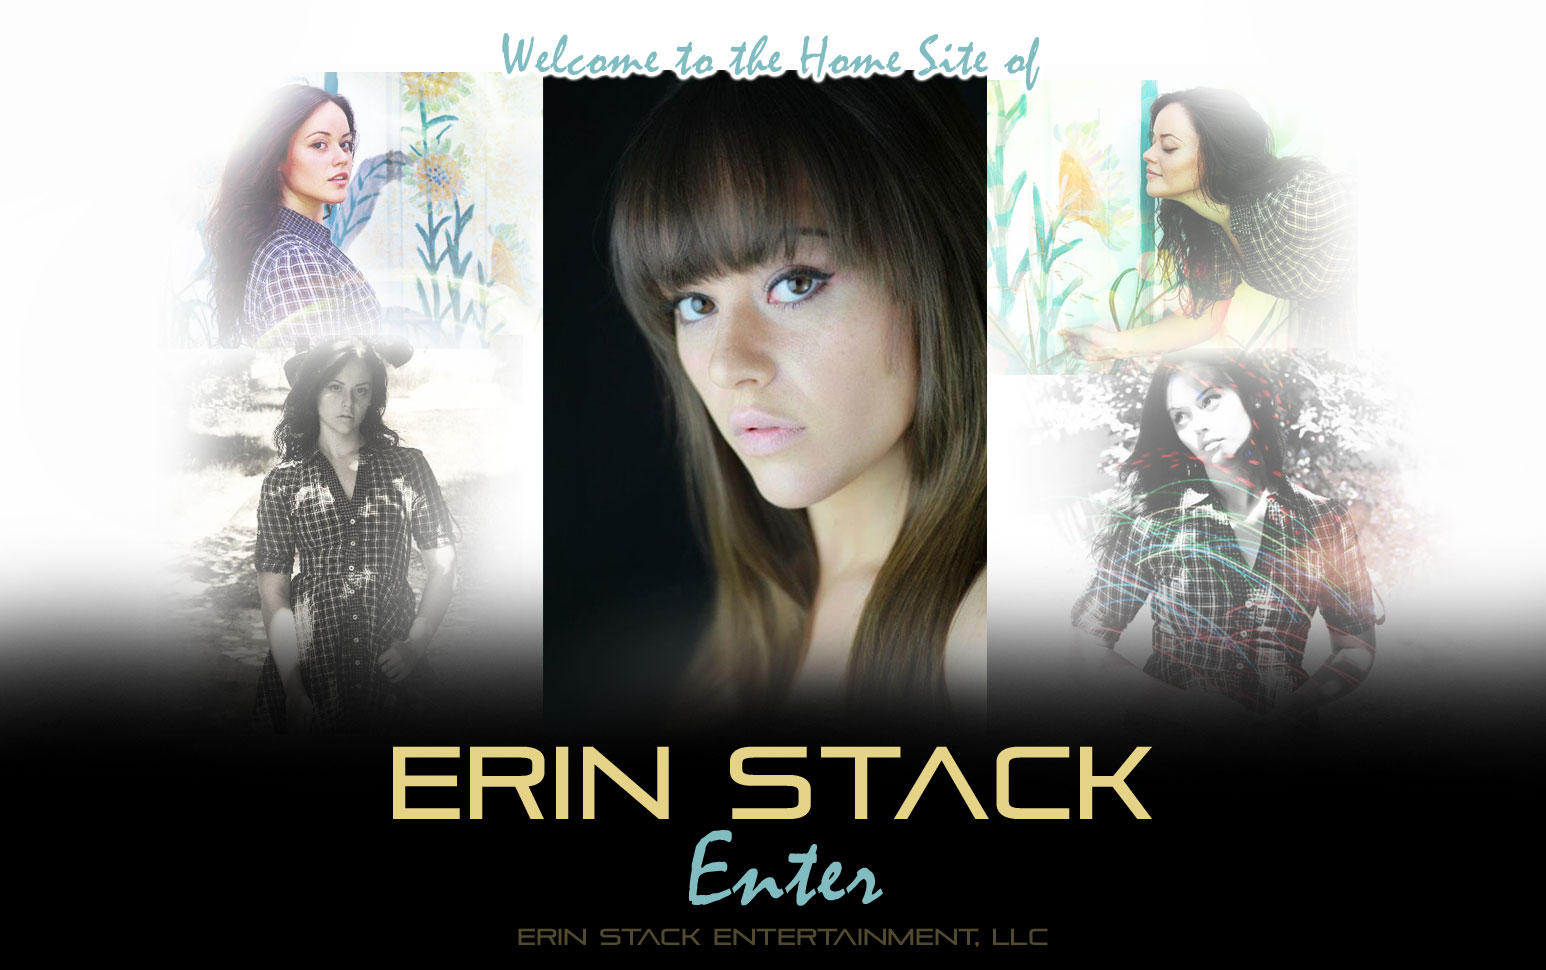 ERIN STACK